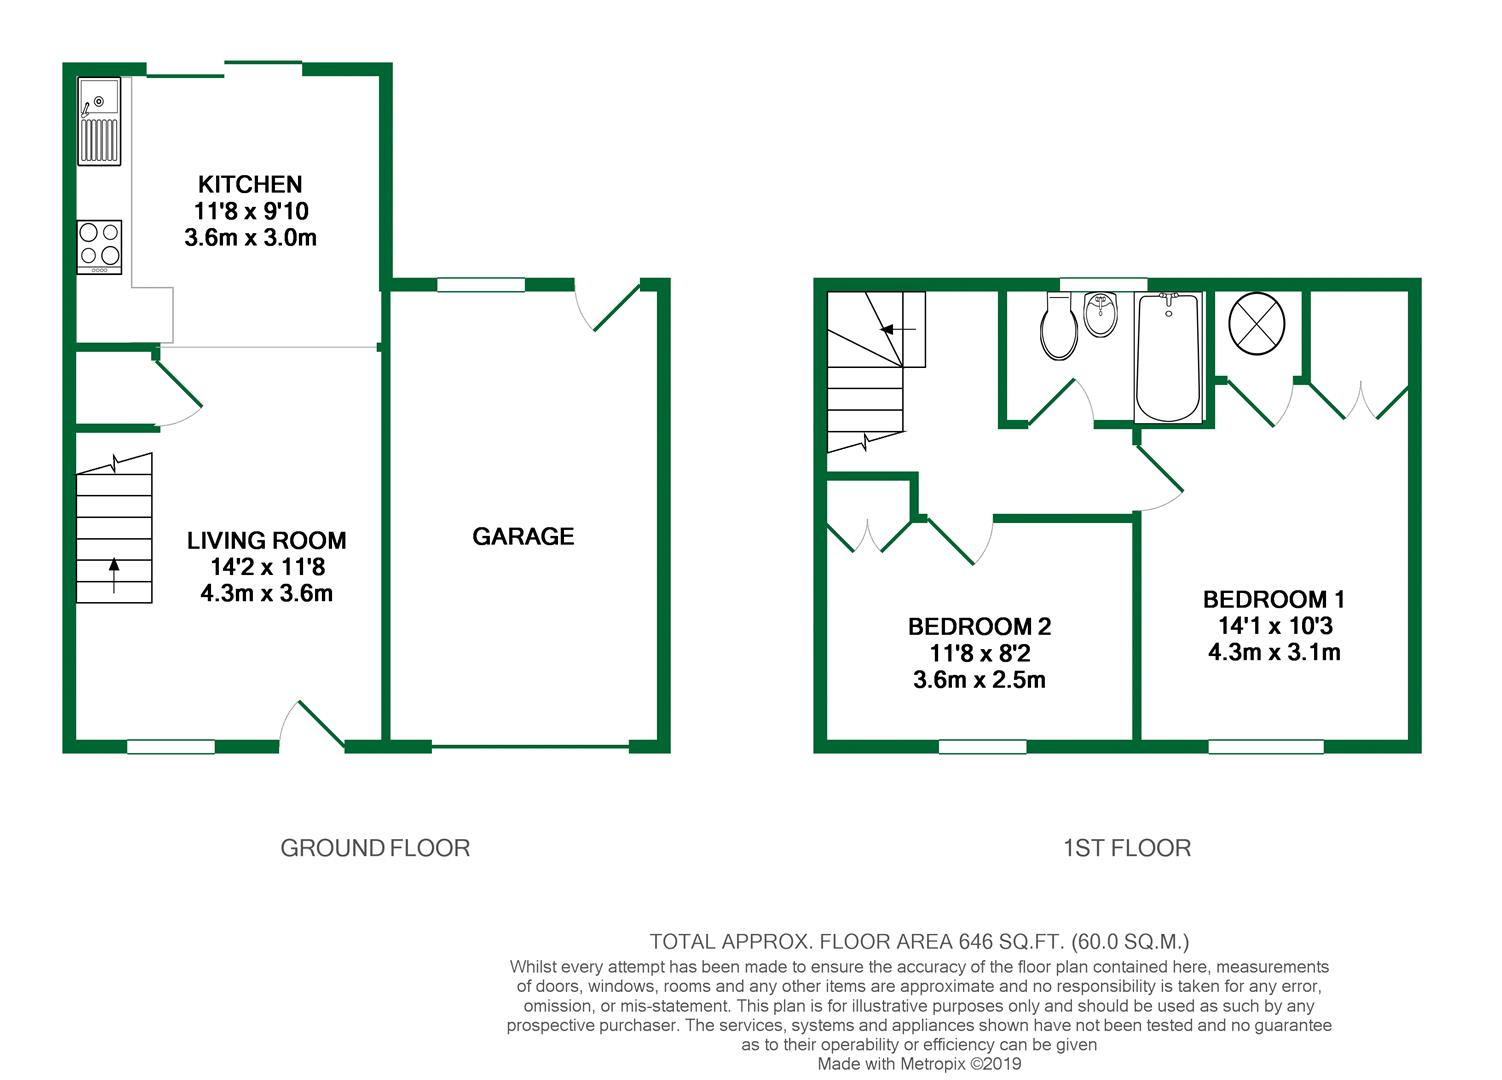 Floorplans For Chilcombe Way, Lower Earley, Reading